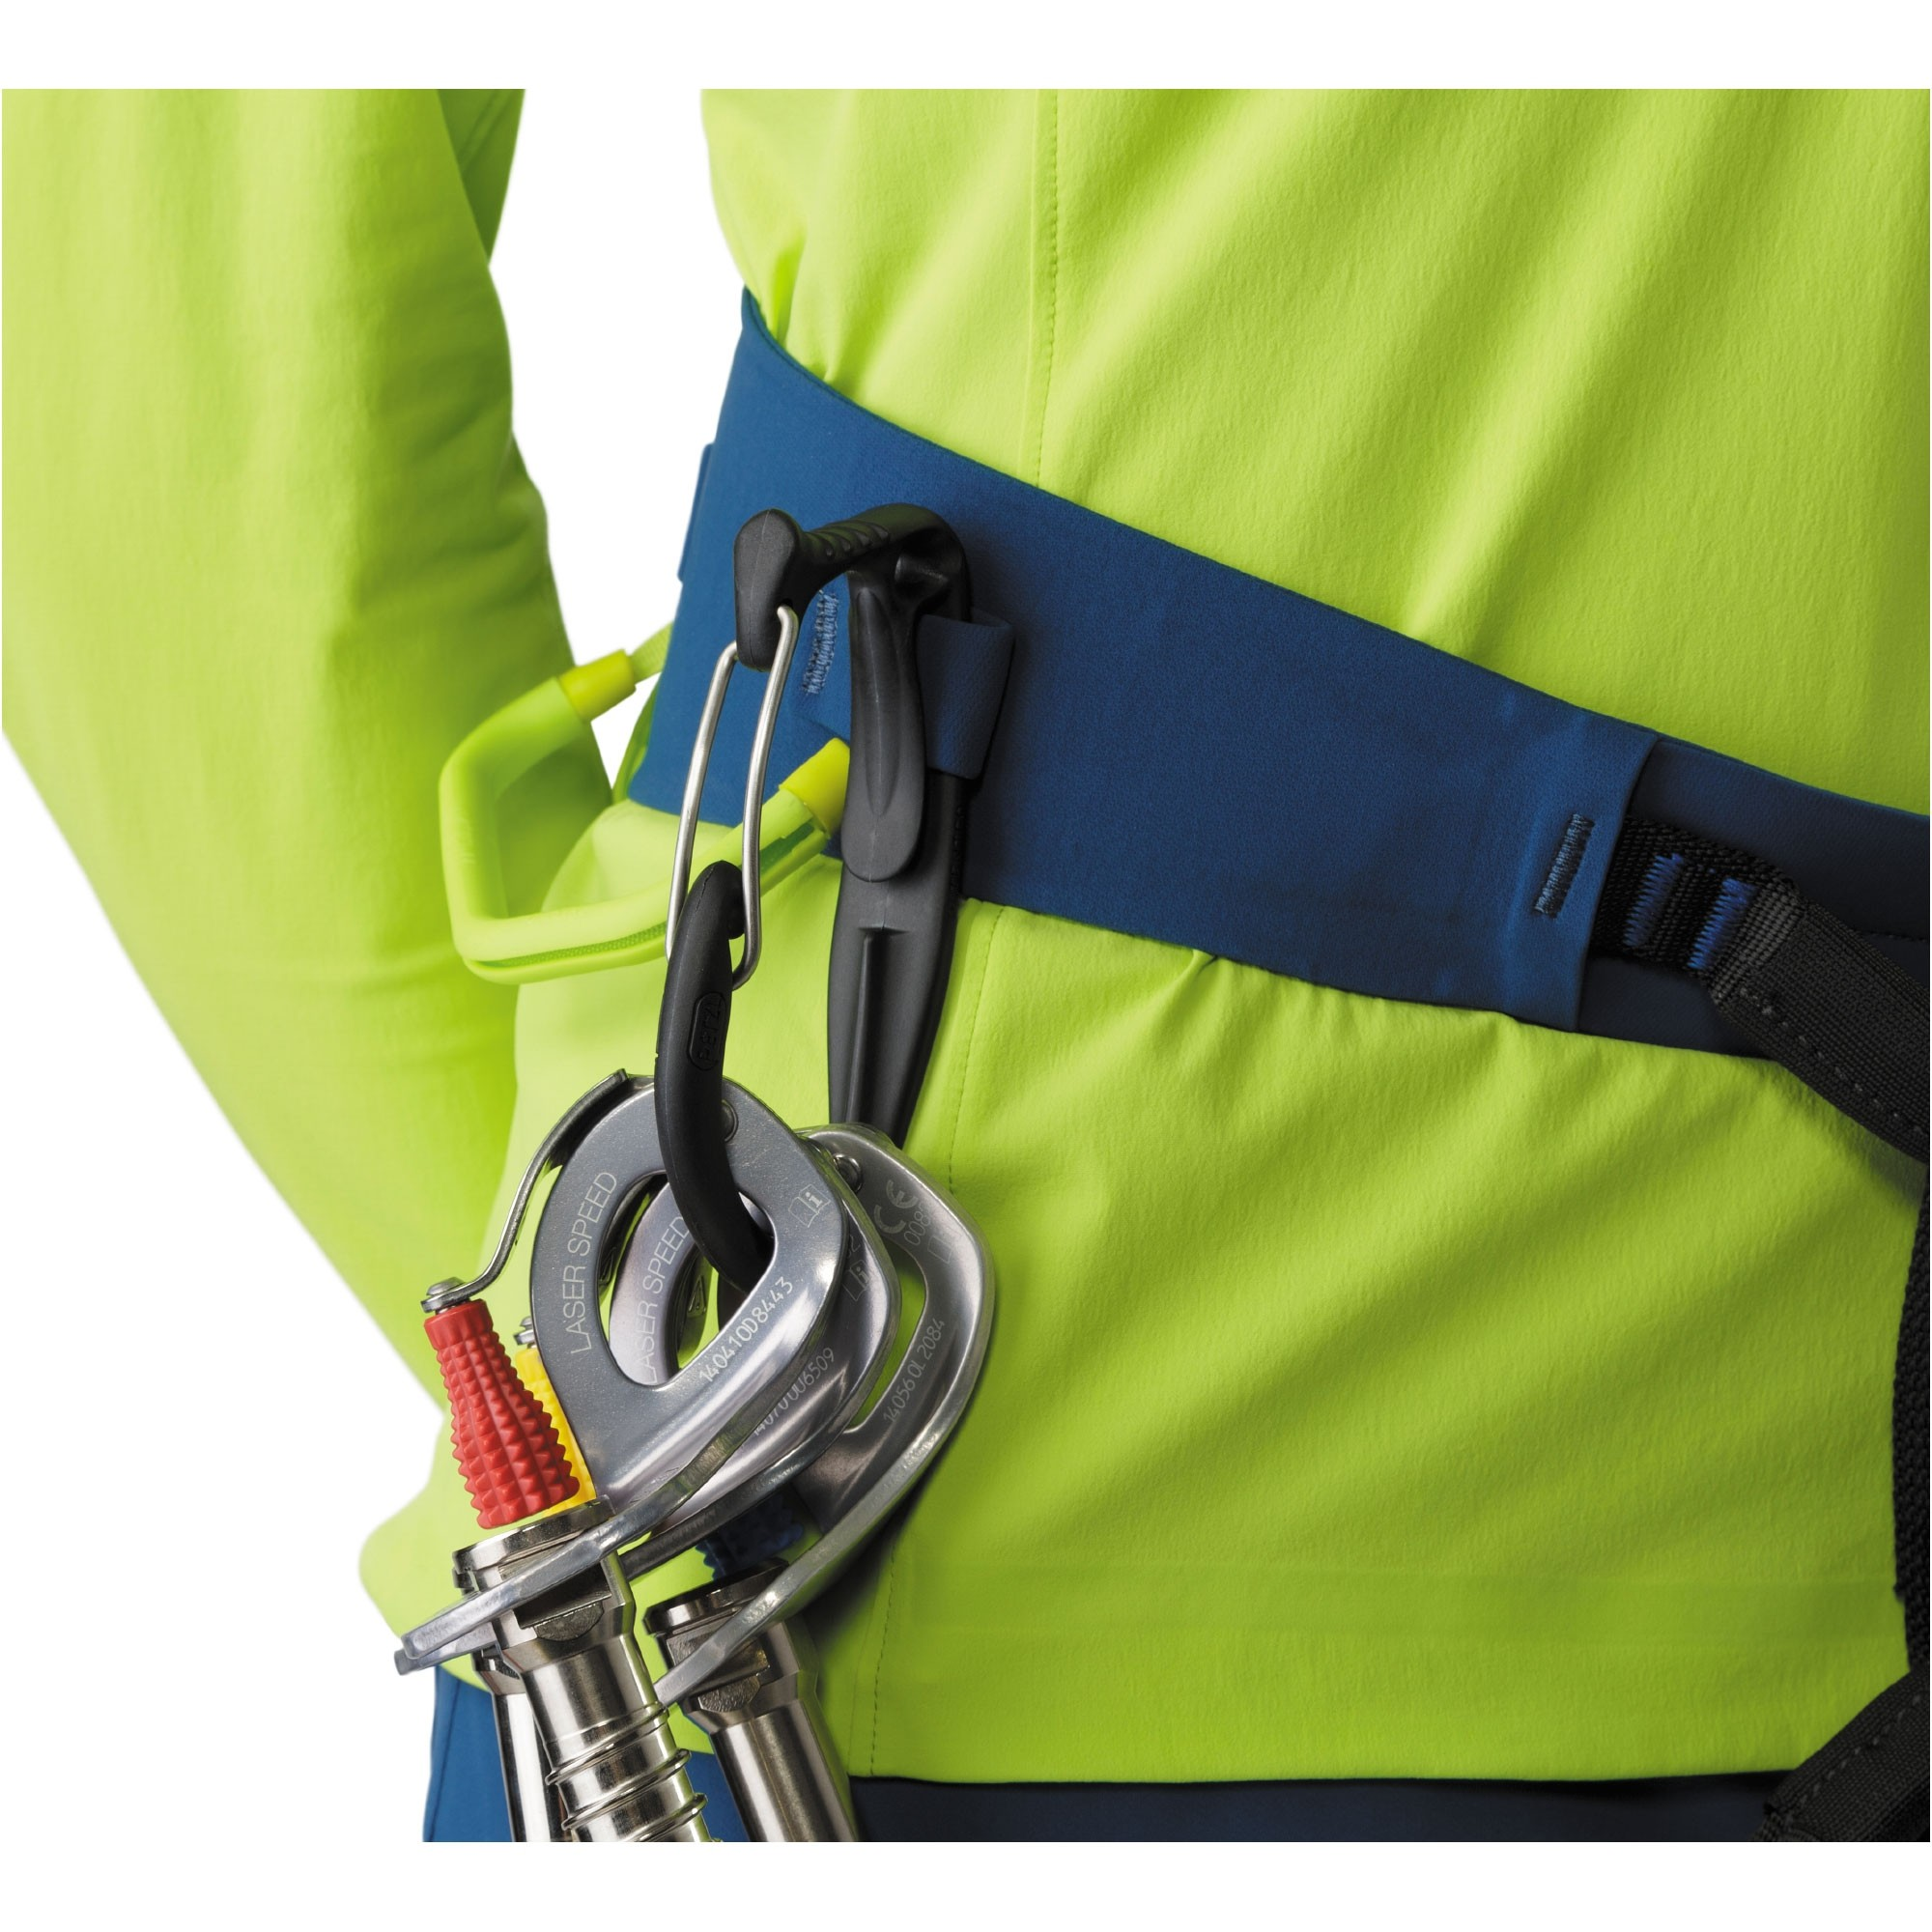 Arcteryx-15995-FL-355-Harness-W-Poseidon-Titanite-ice-clipper-slots-S18